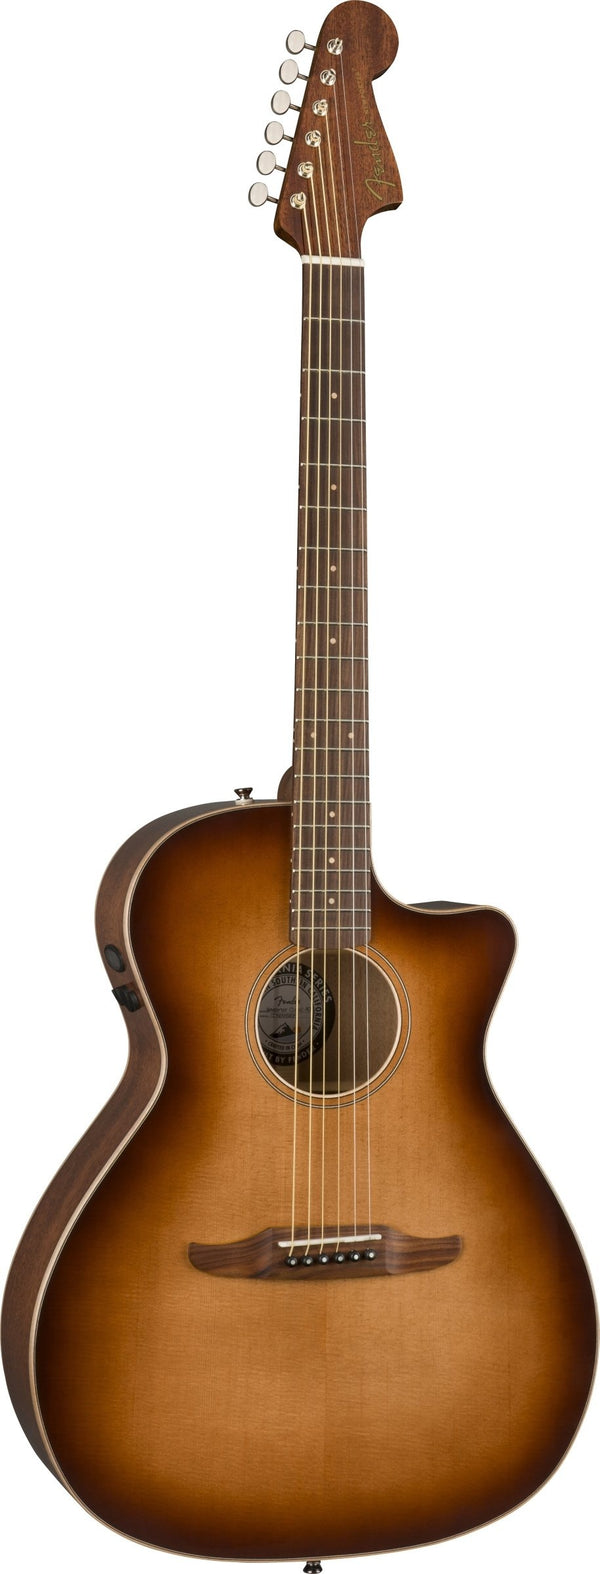 Fender Newporter Classic Acoustic Electric - Aged Cherry Burst